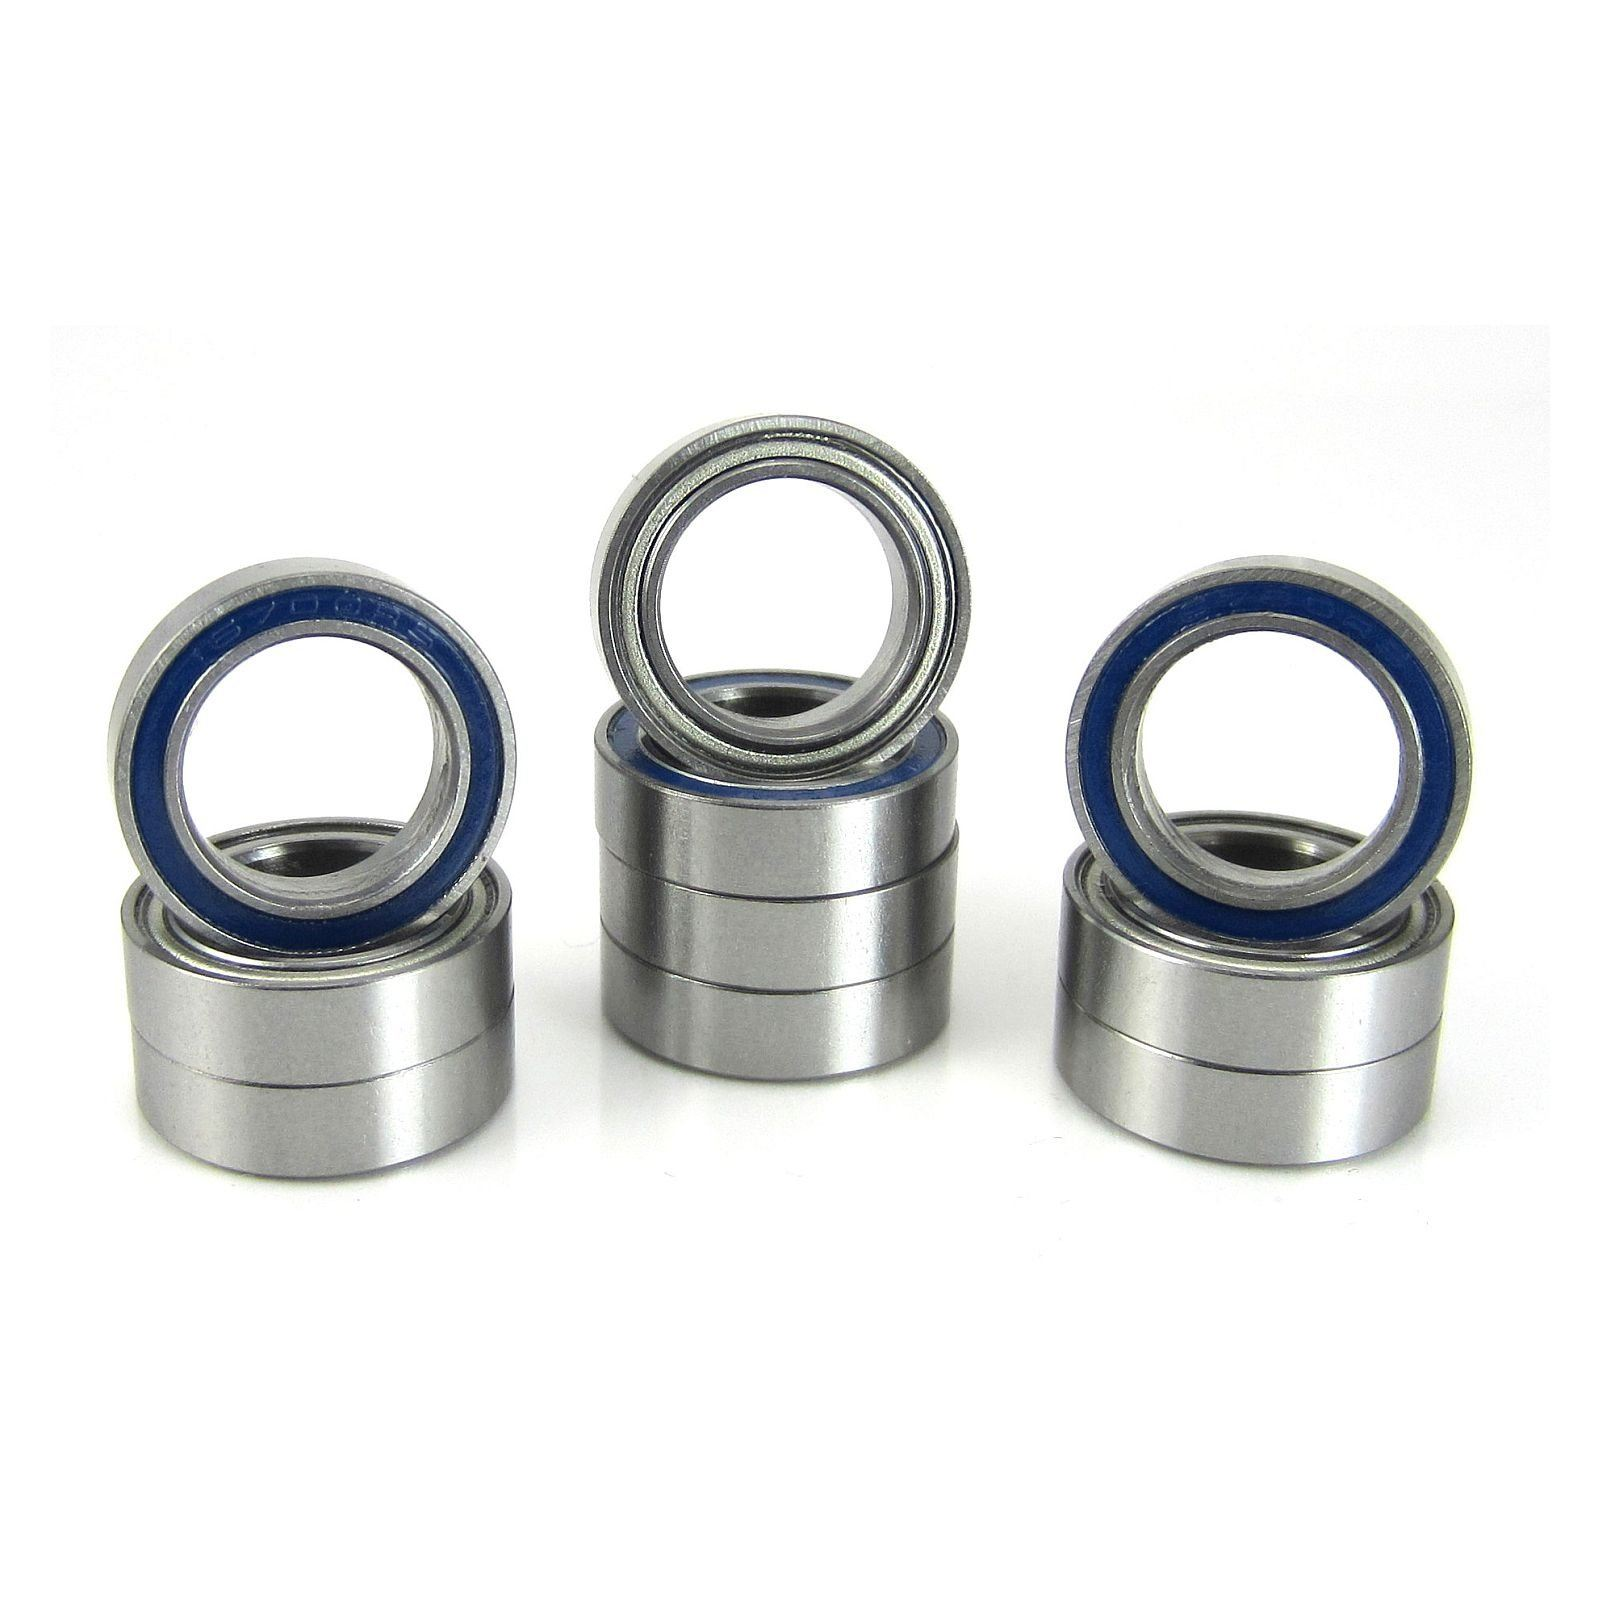 TRB RC 10x15x4mm Precision Ball Bearings ABEC 5 Hybrid Seals Blue (10) - trb-rc-bearings